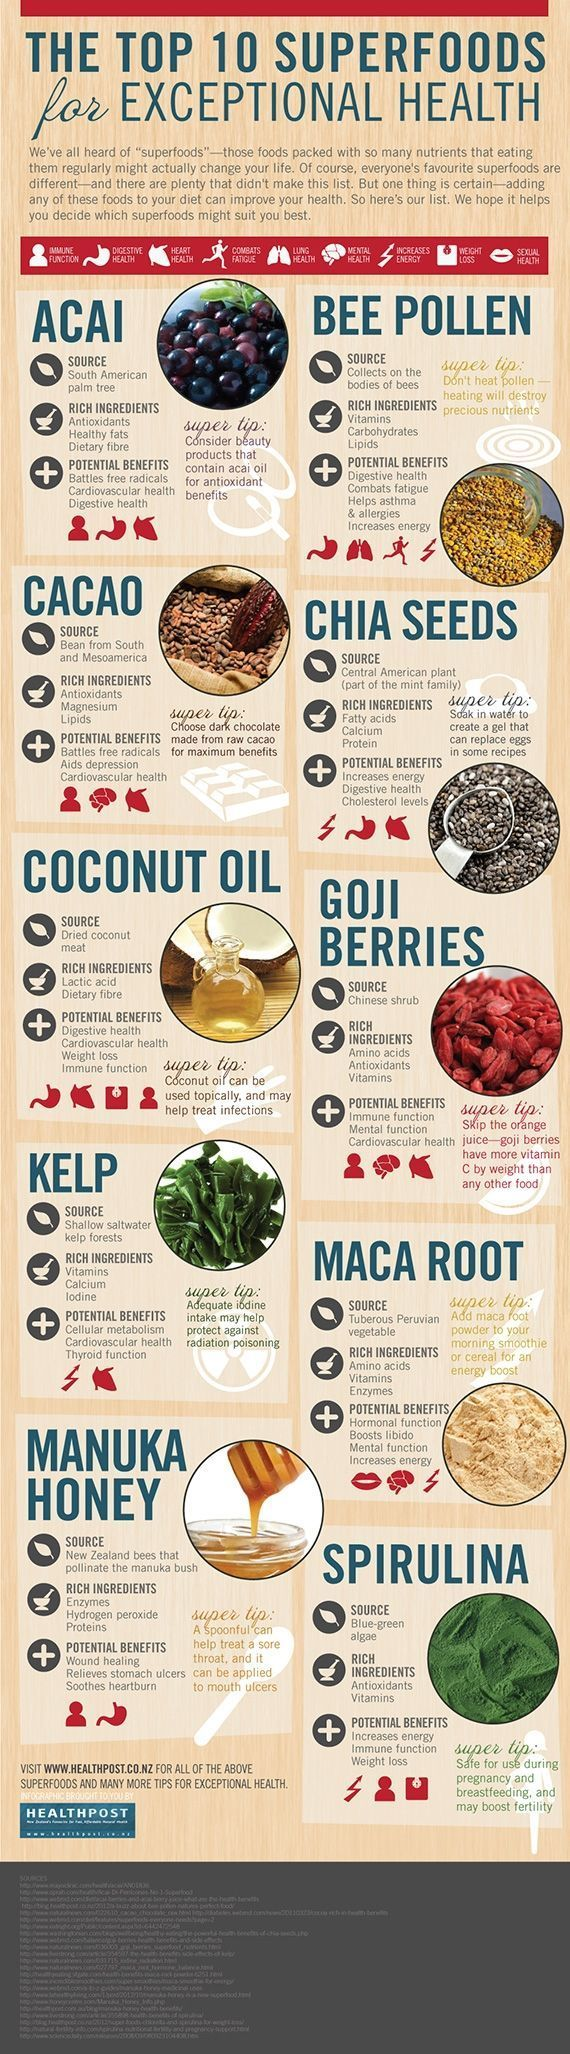 10 Superfoods You Should Be Eating Weekly